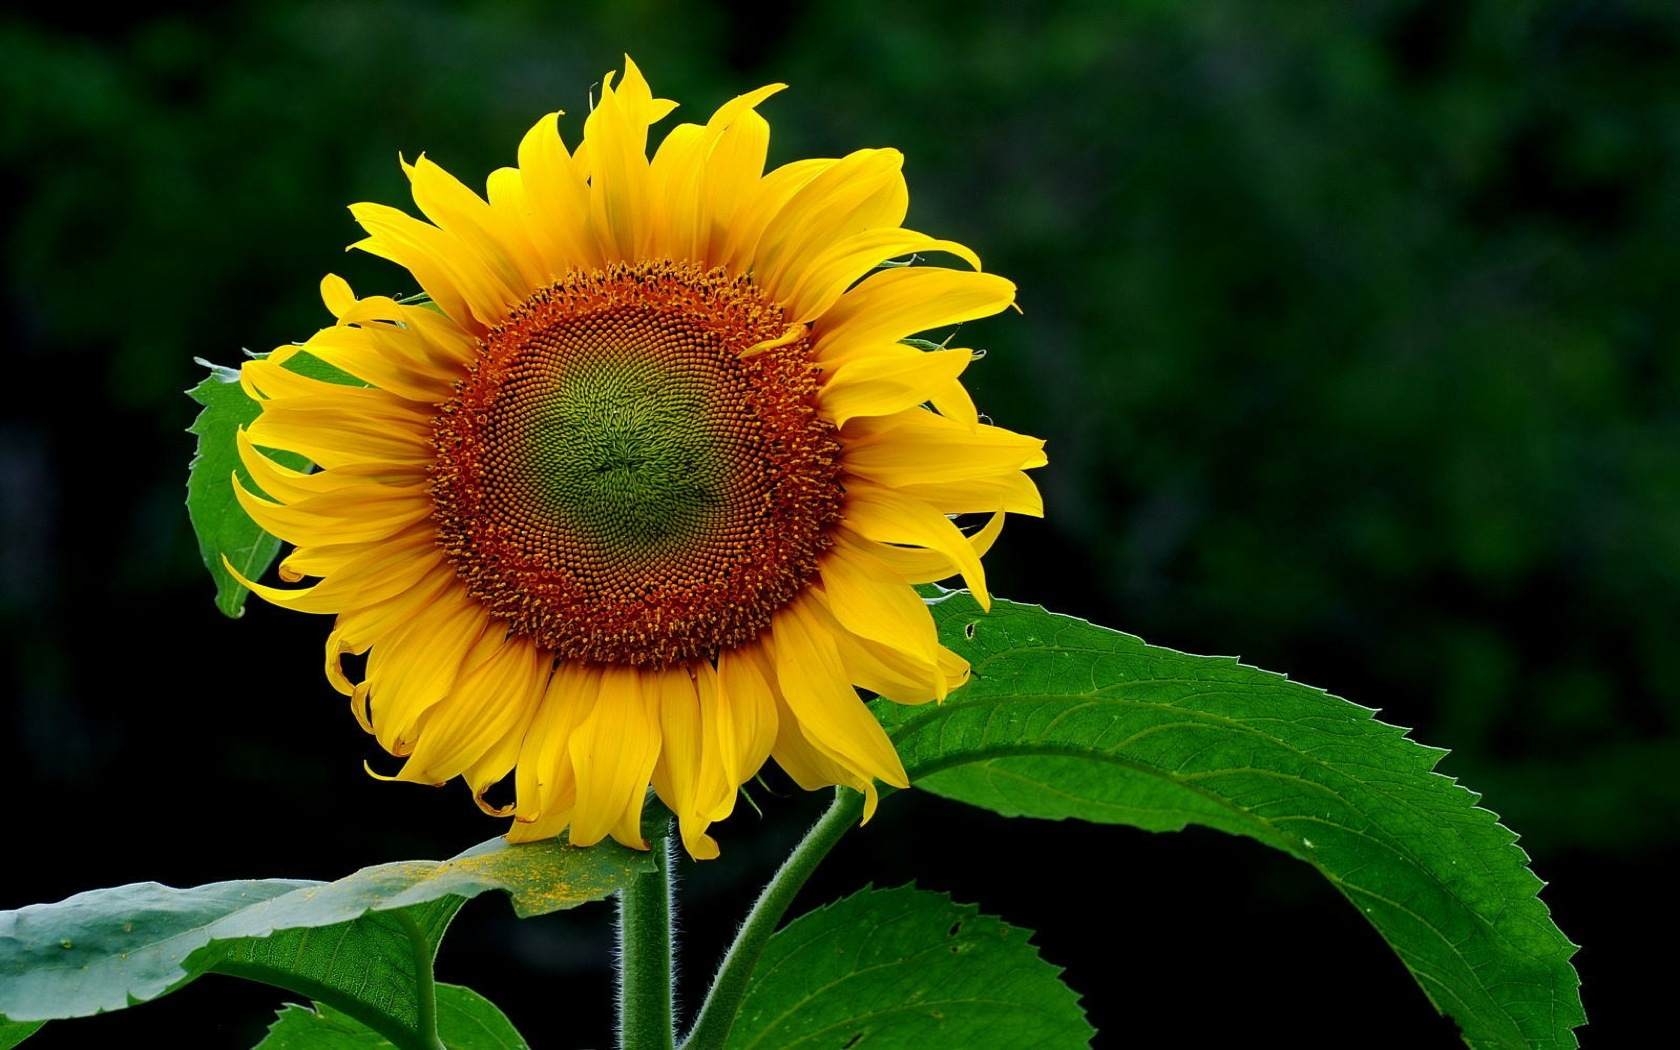 Sunflowers sunflower HD Wallpaper